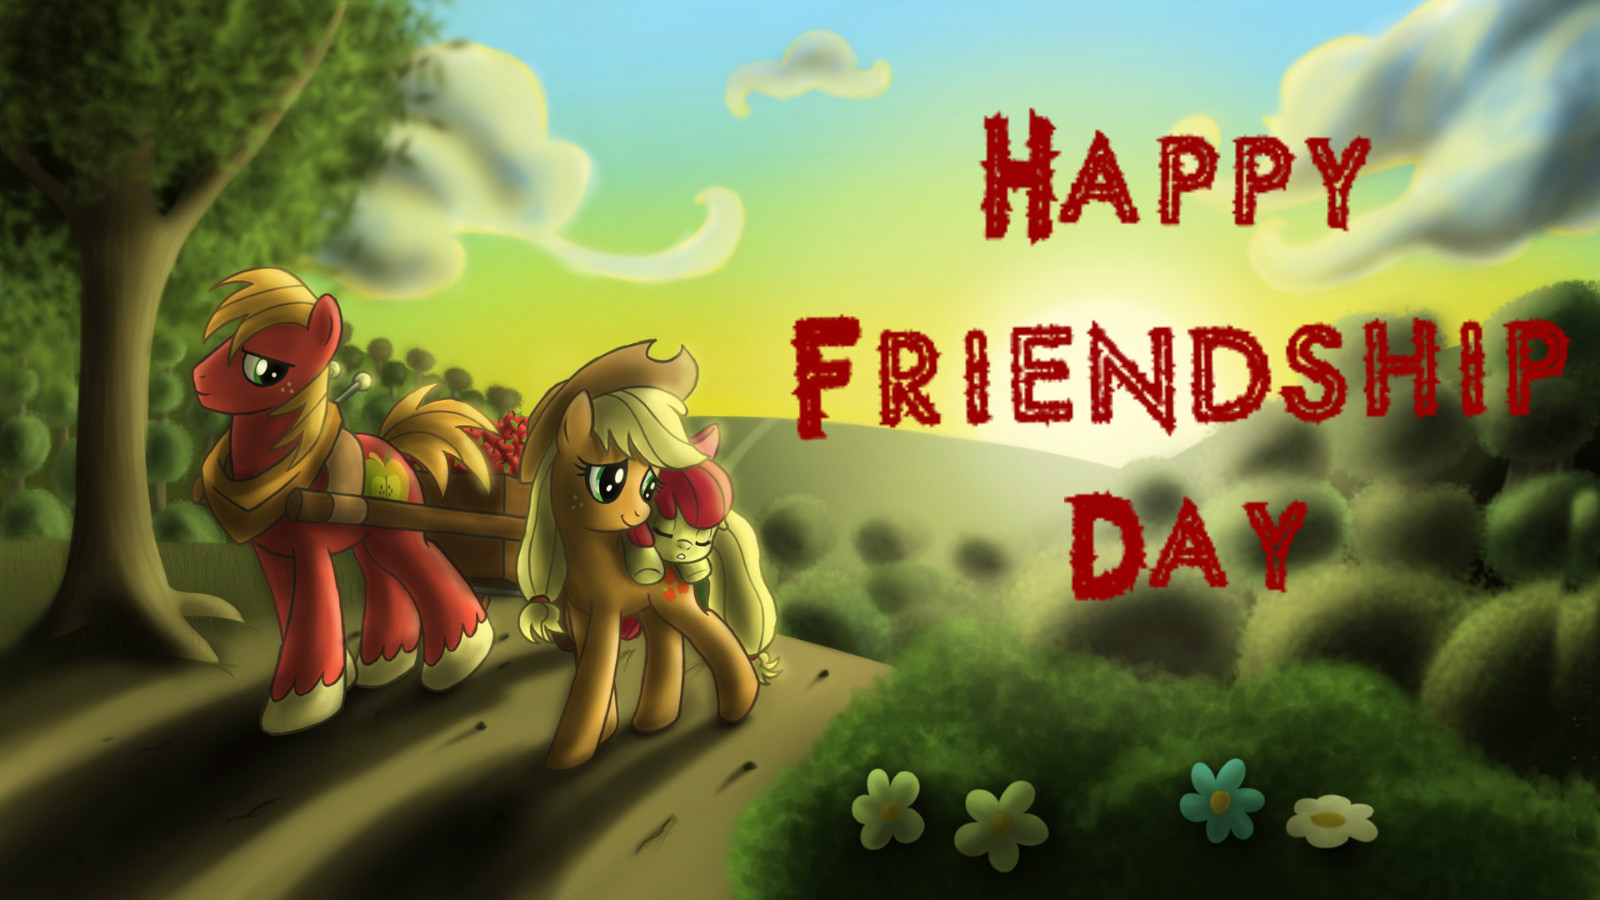 best happy friendship day messages images